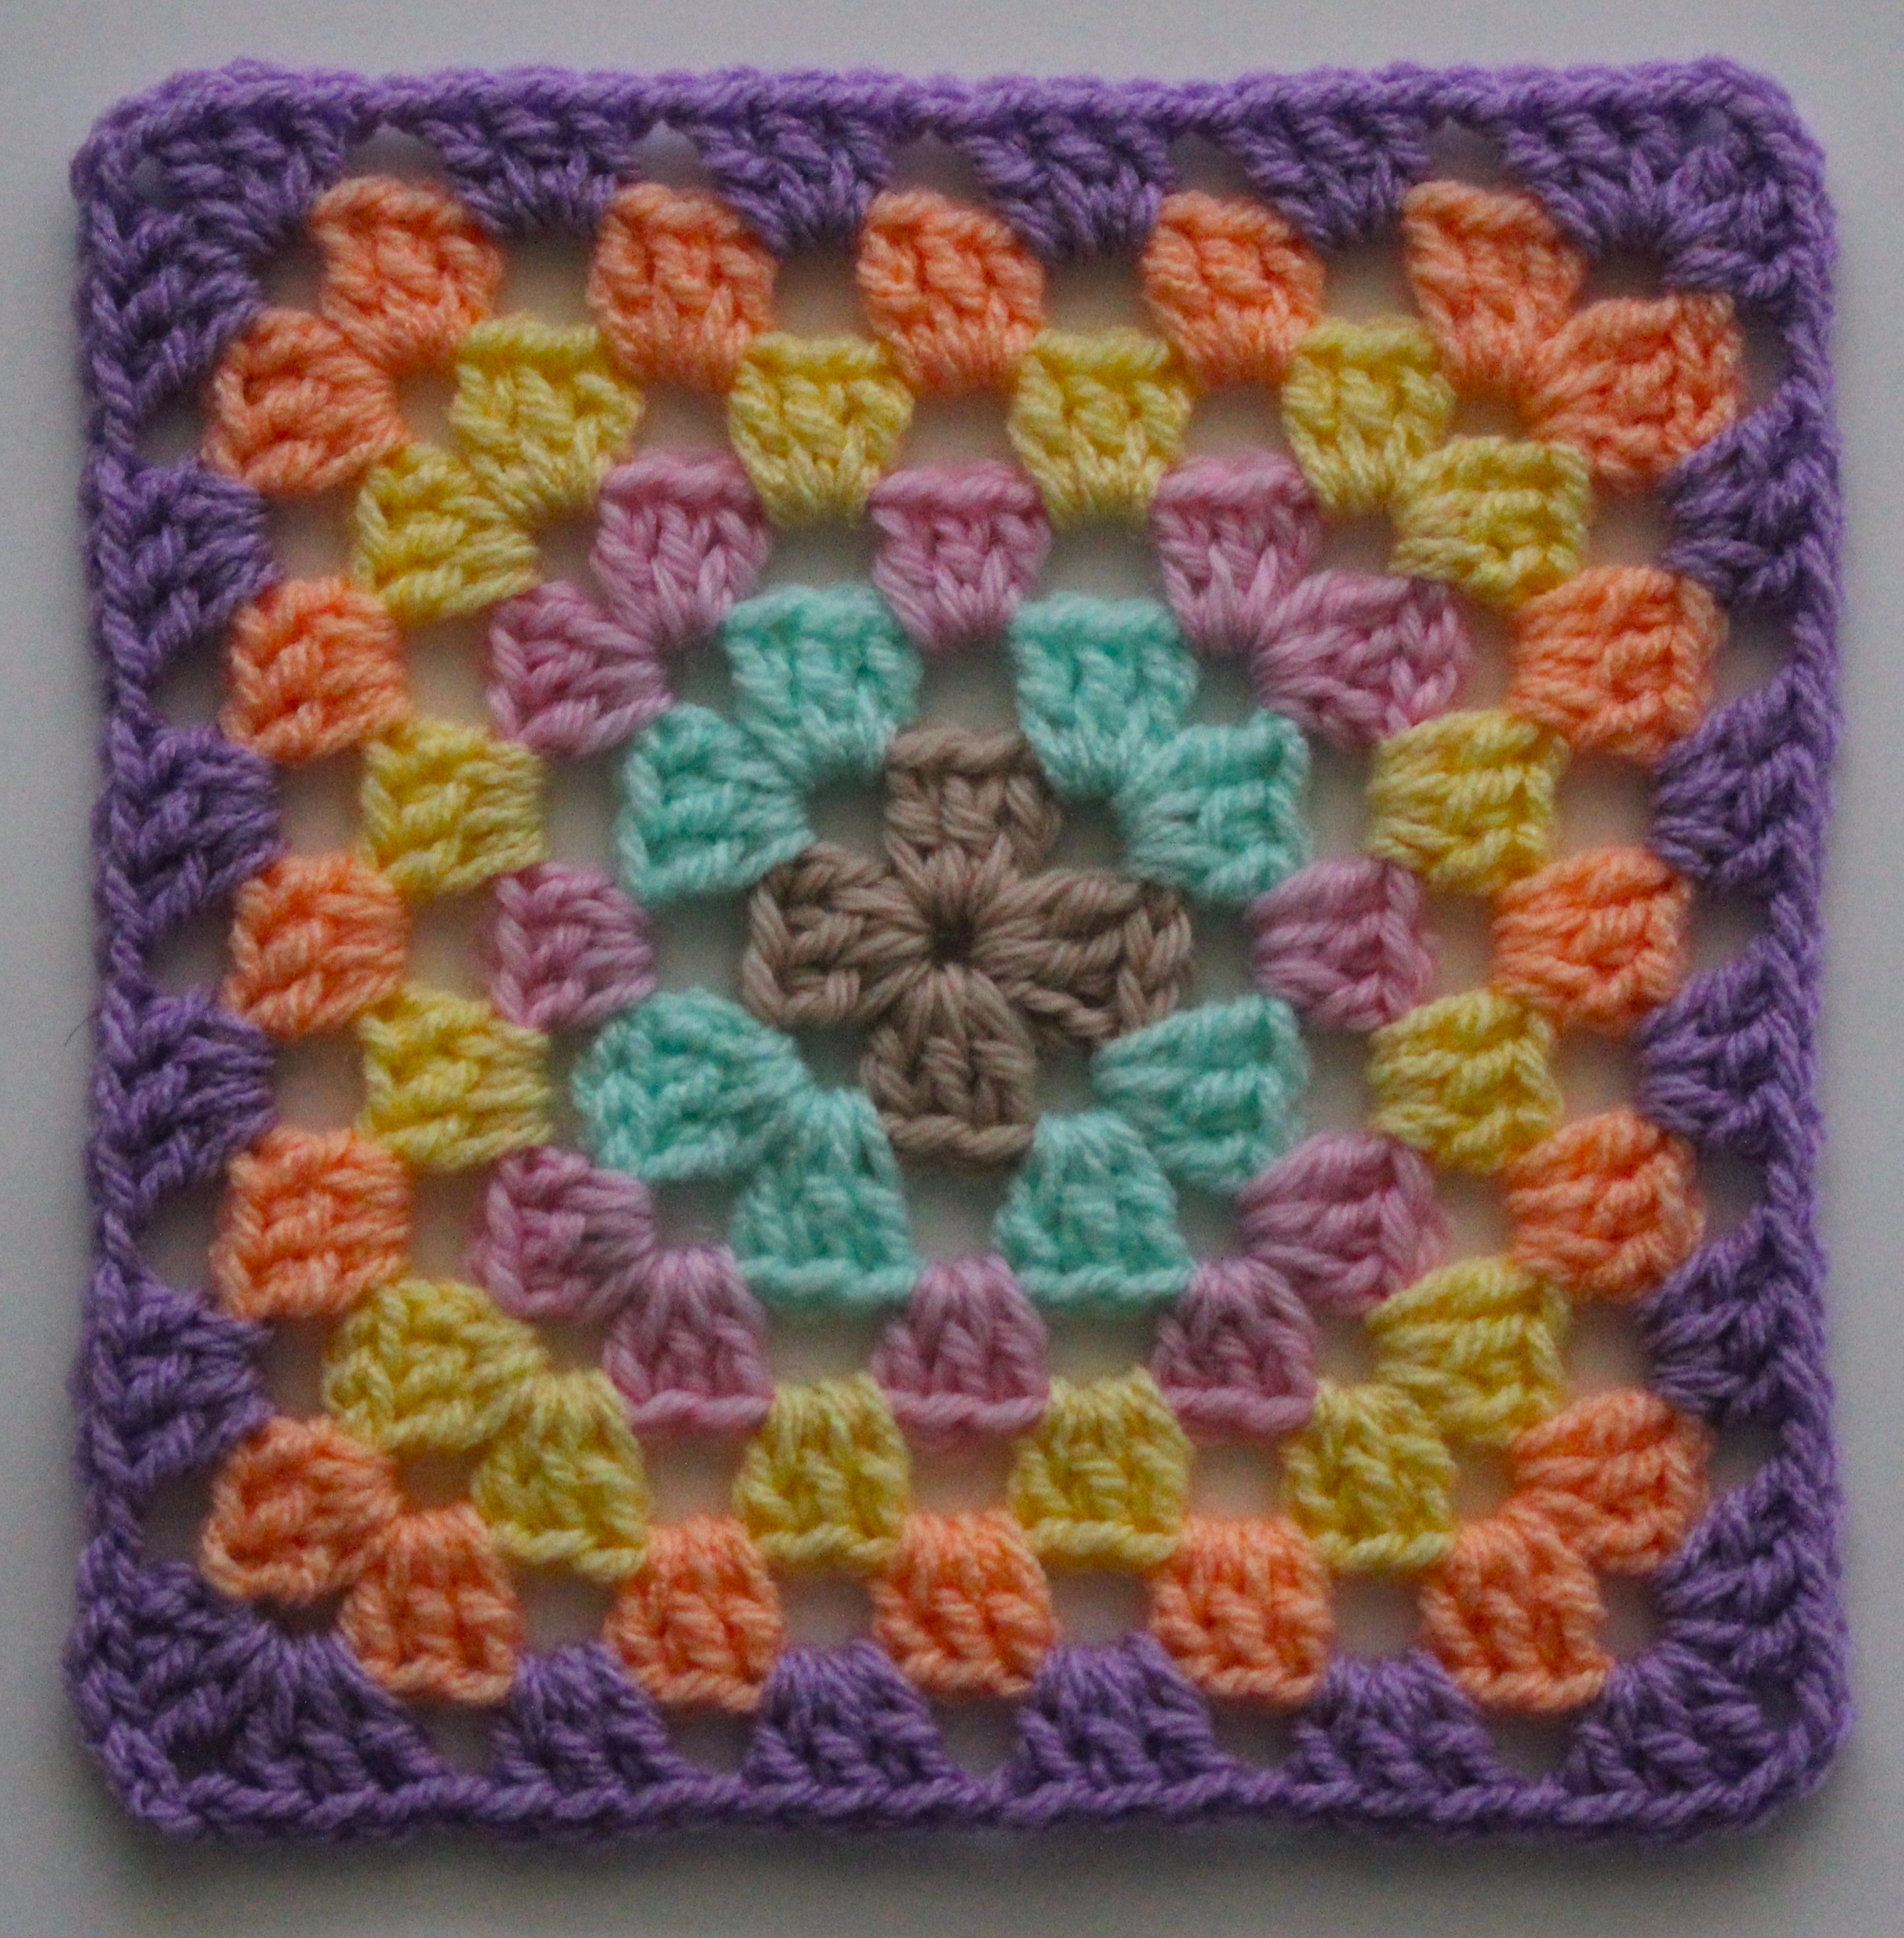 Free Crochet Easy Granny Square Patterns : FREE Motif Monday: Basic Granny Square Sarah London